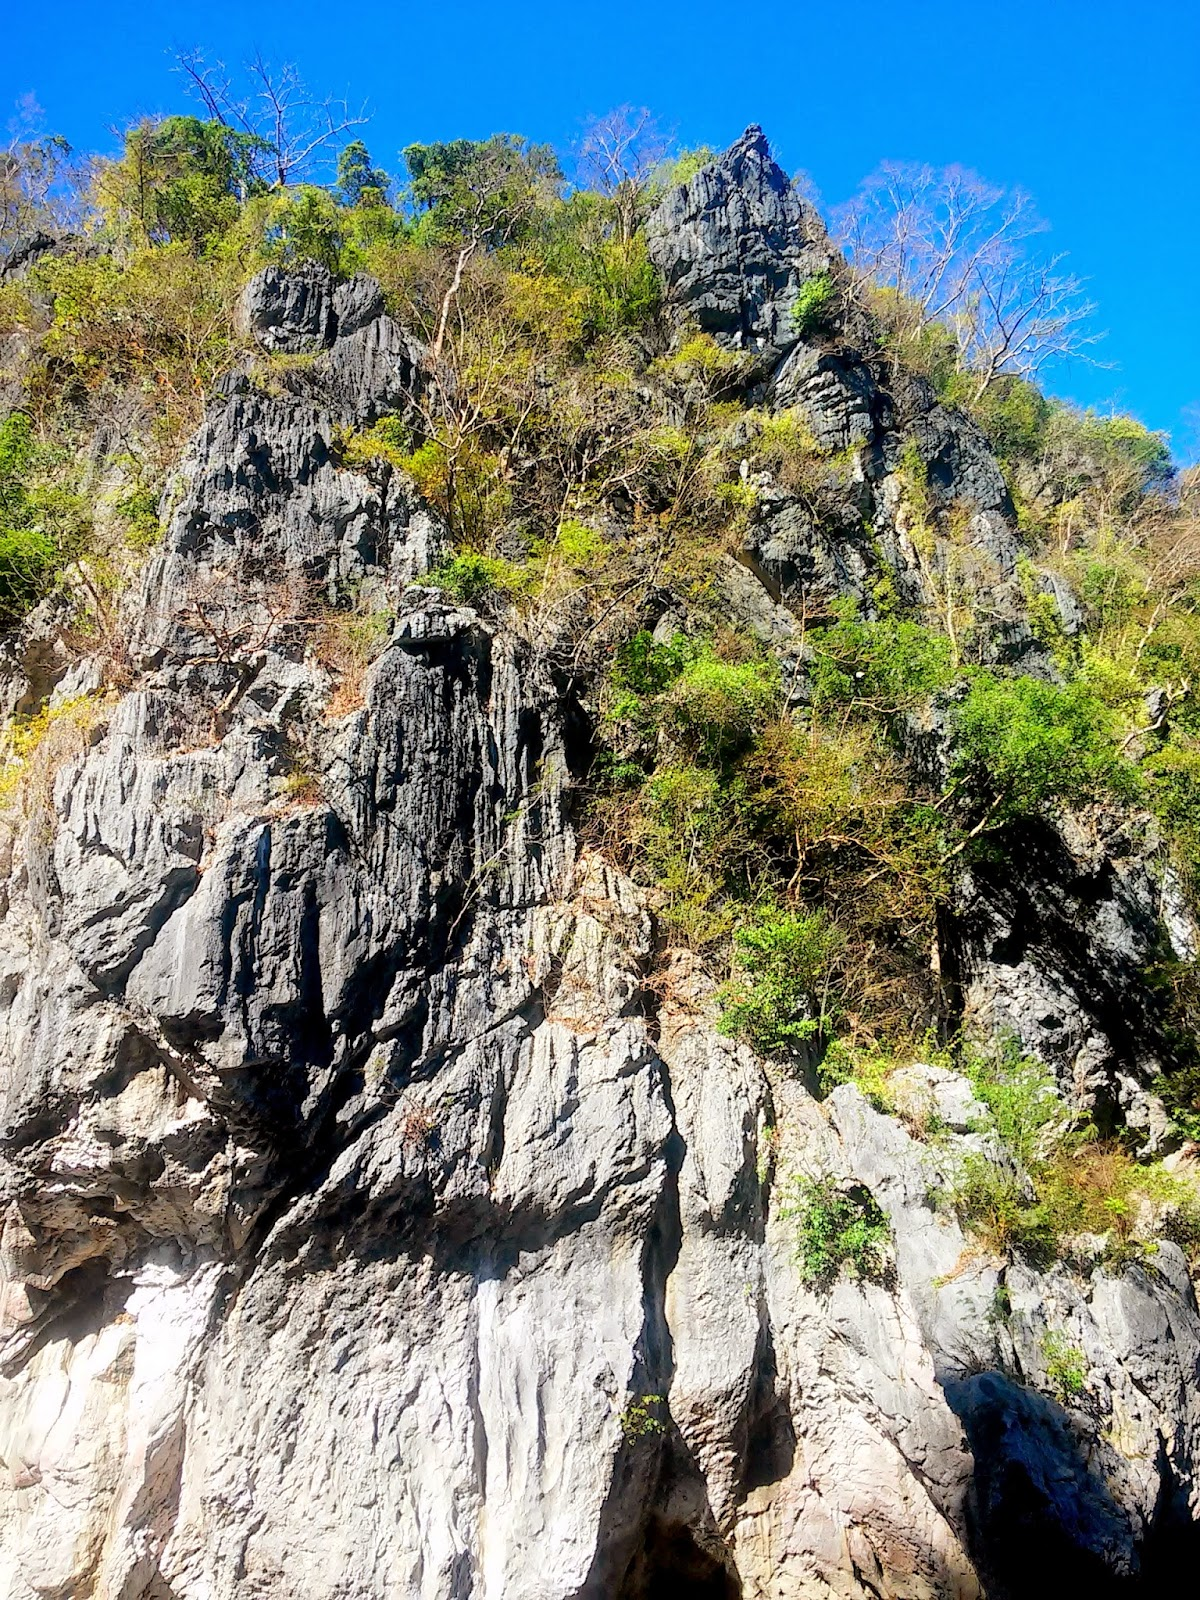 16 Meters High Limestone walls of Minalungao National Park